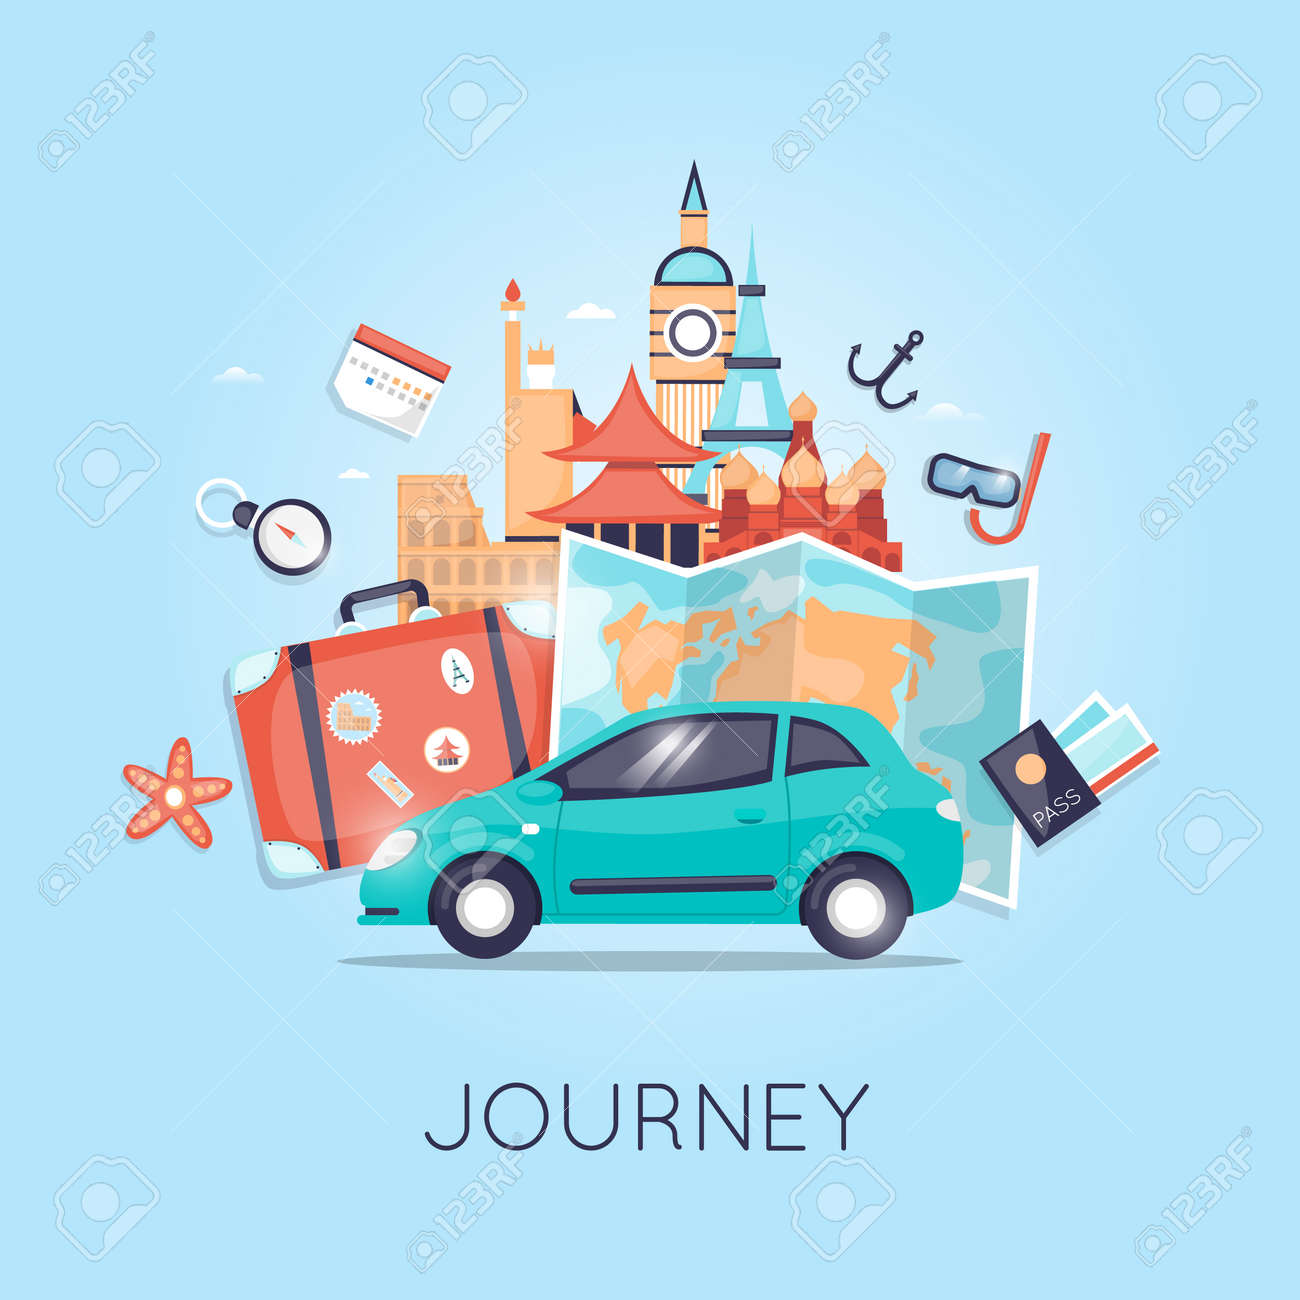 Travel by car Russia, USA, Japan, France, England, Italy. World Travel. Planning summer vacations. Summer holiday. Tourism and vacation theme. Flat design vector - 54975740